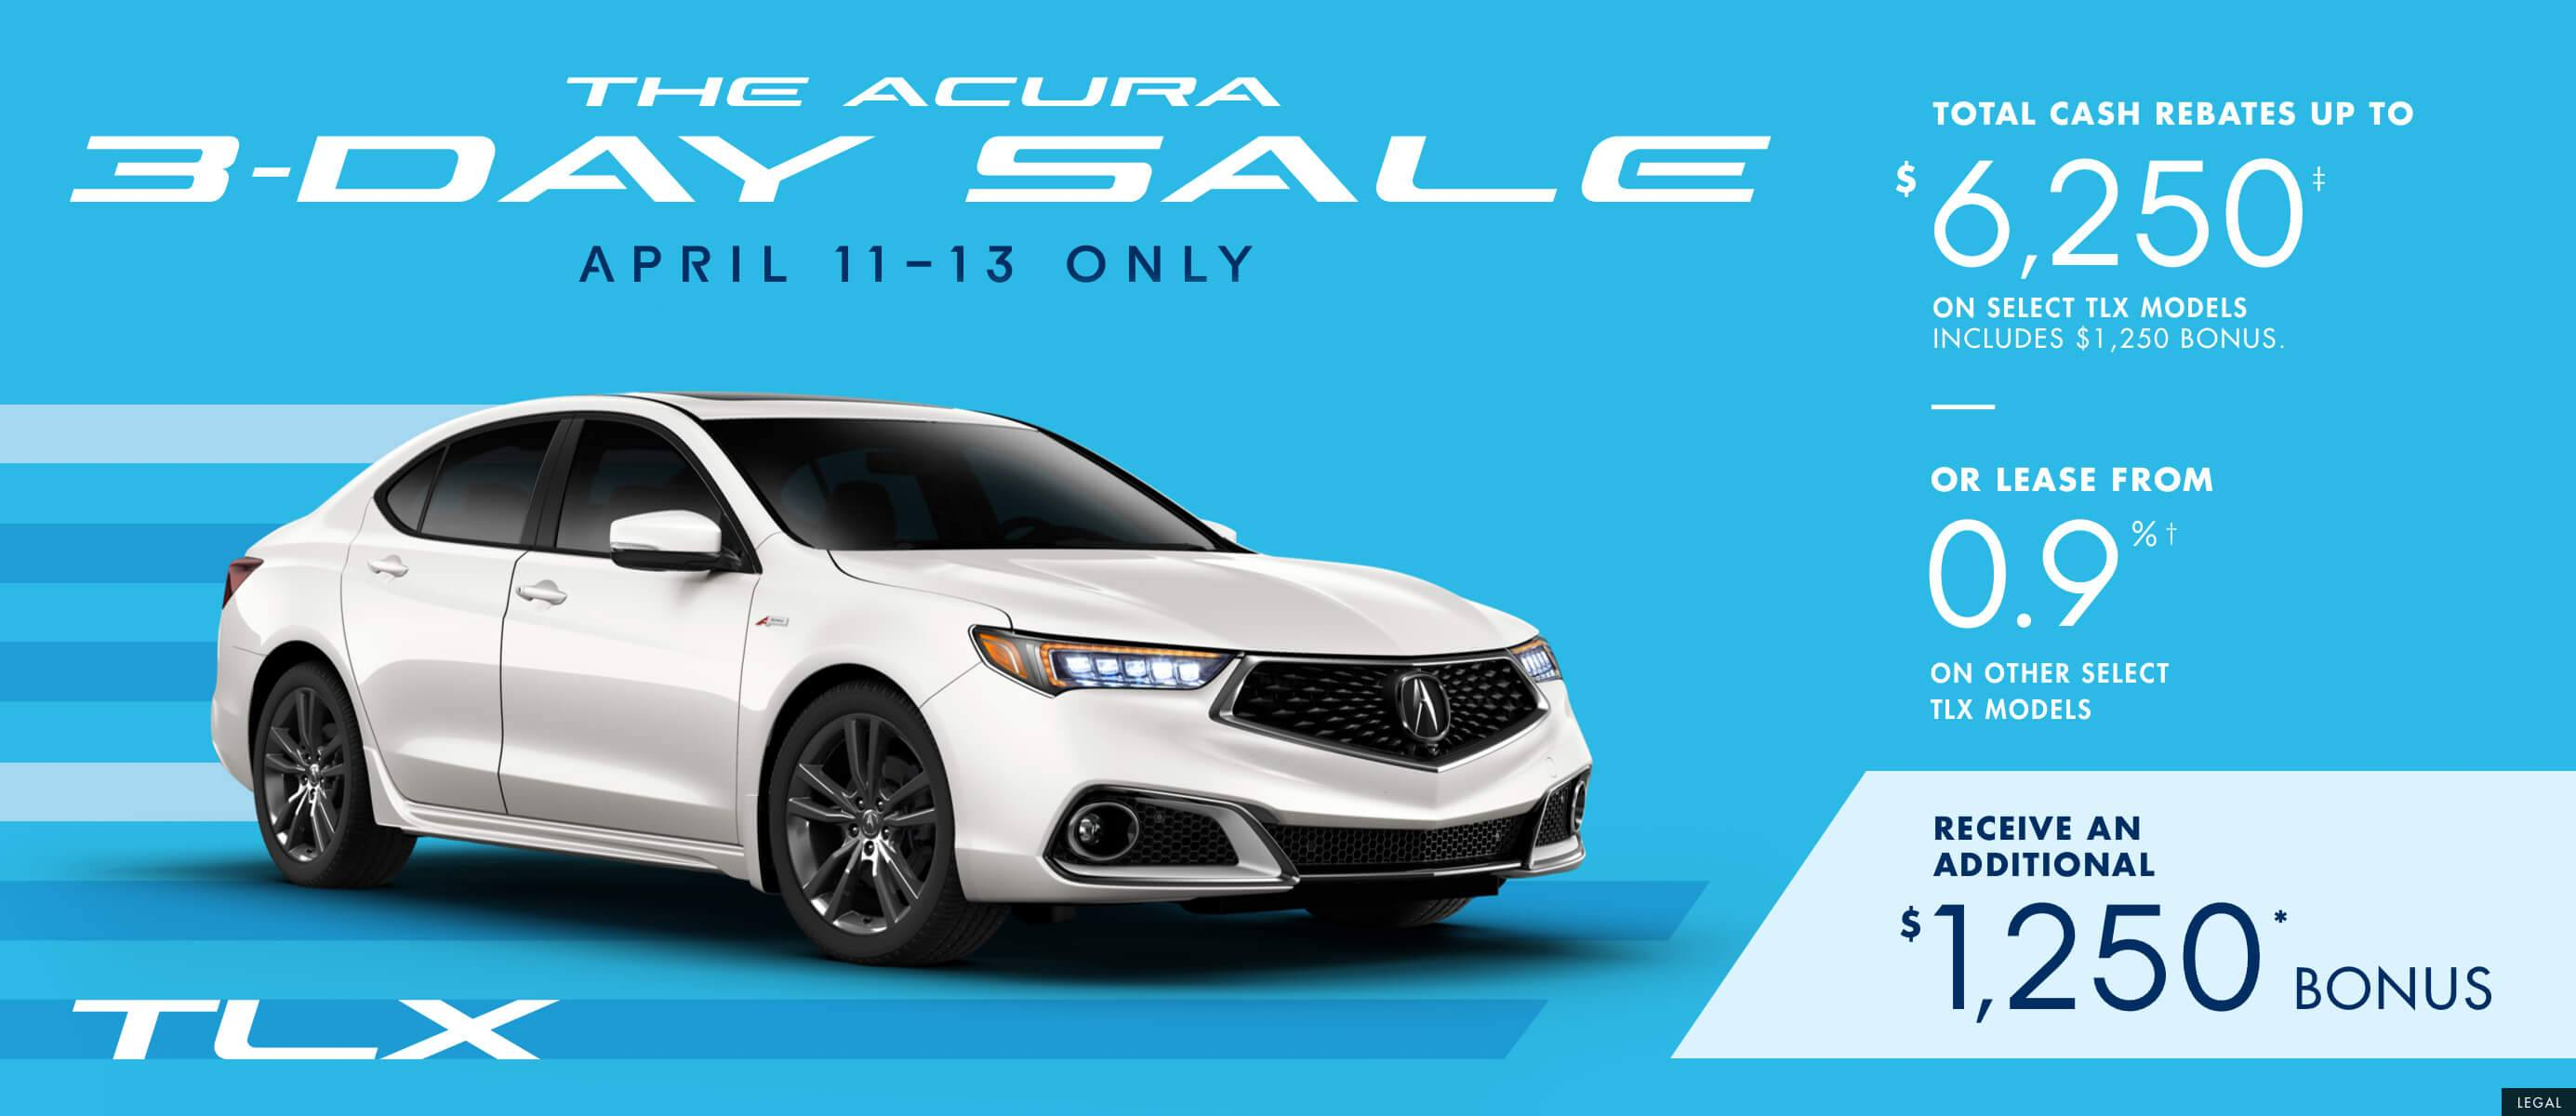 2019 Acura TLX | The Acura 3 Day Sale